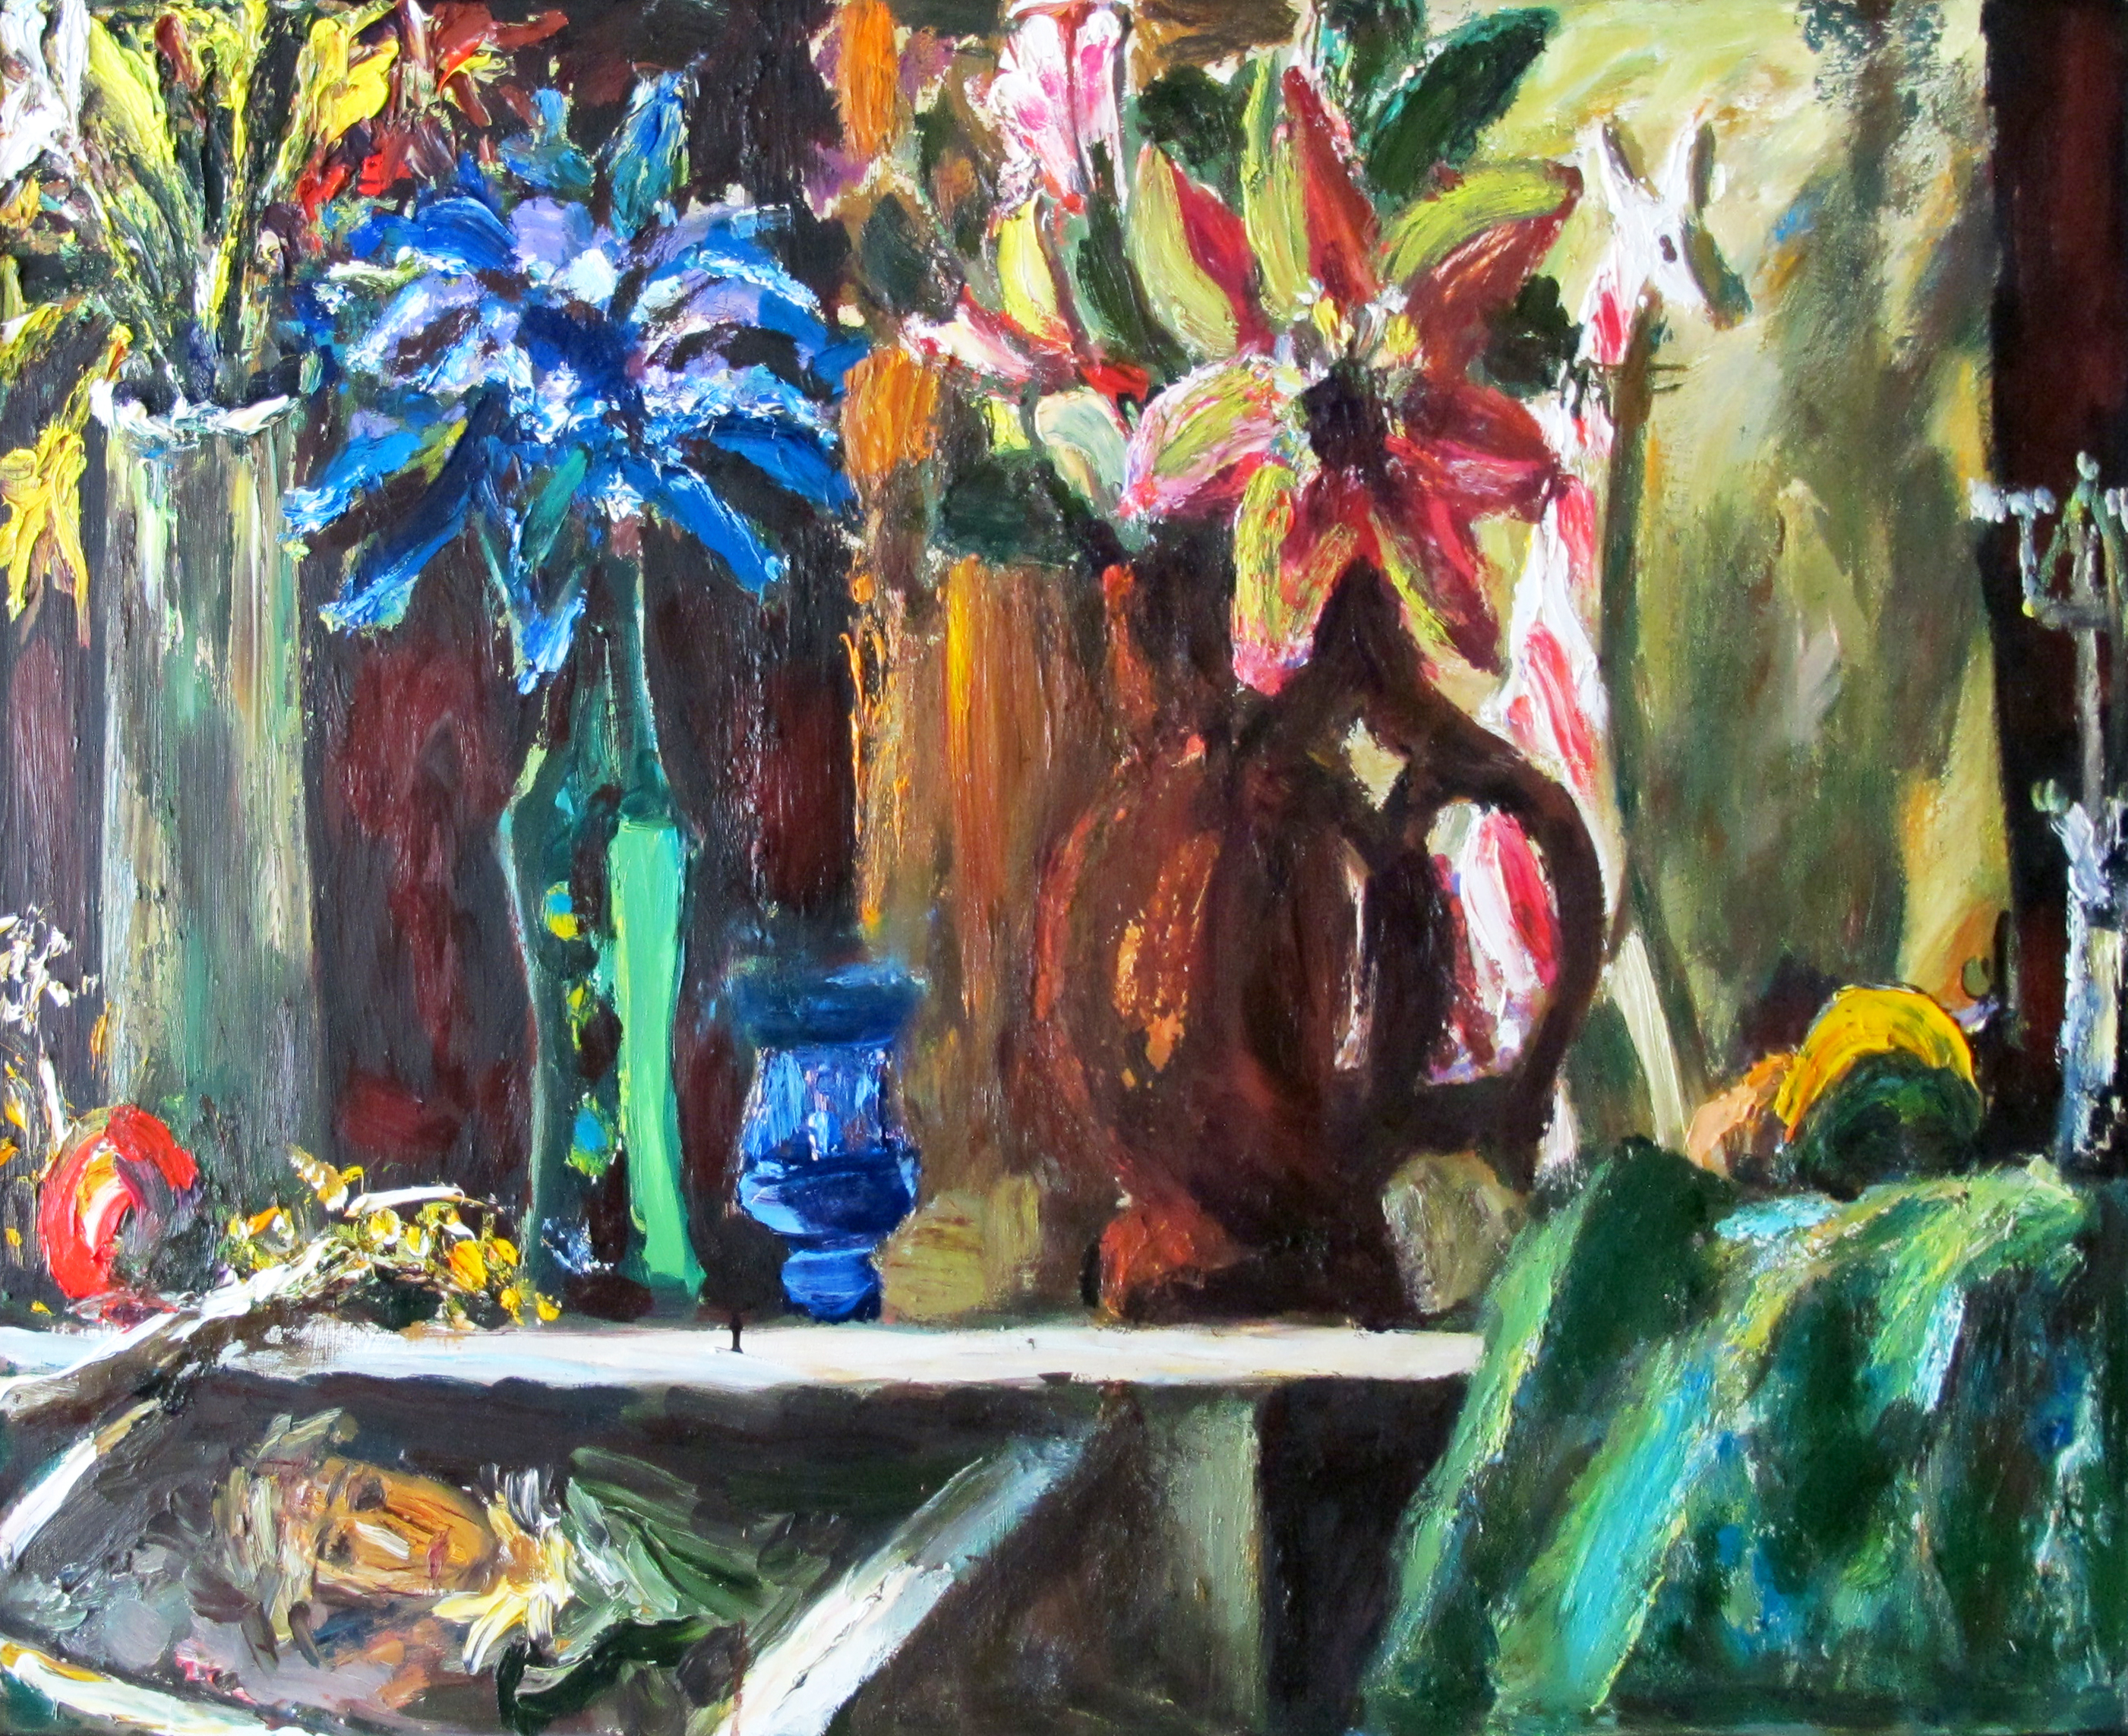 Still life with reproduction